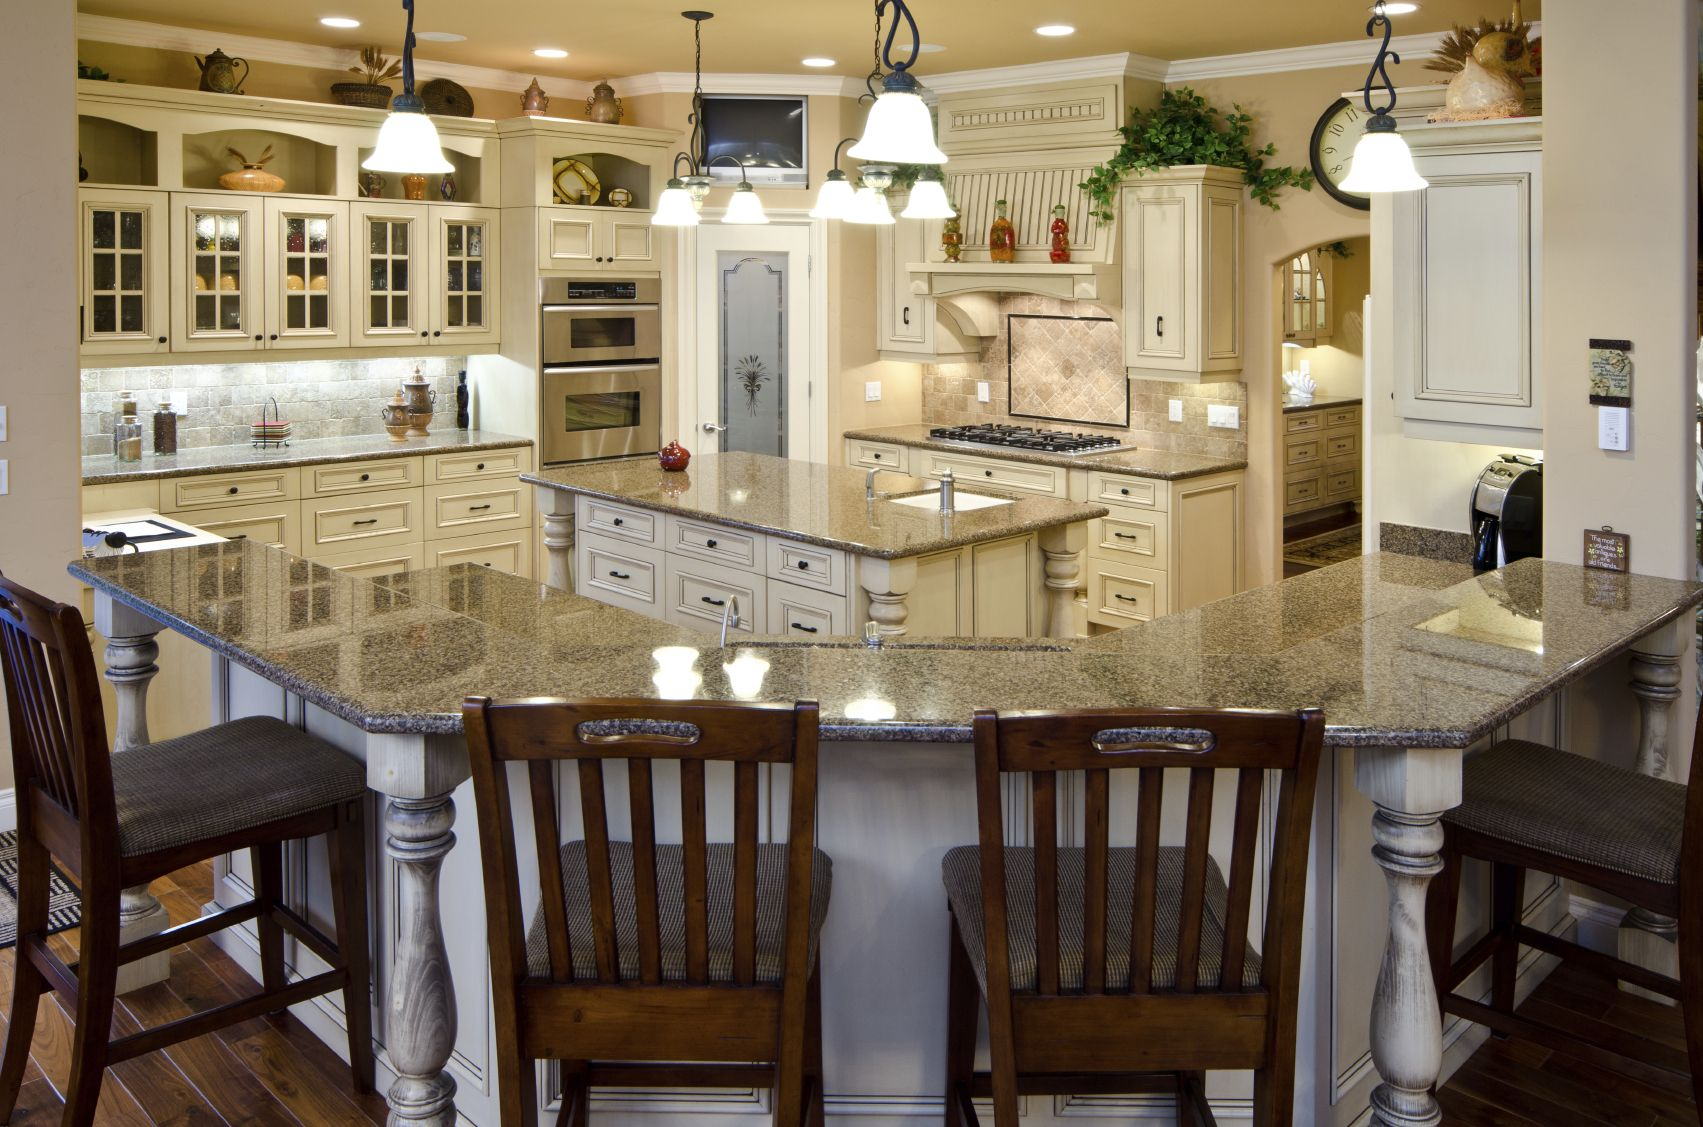 best kitchen images on pinterest kitchen projects and home